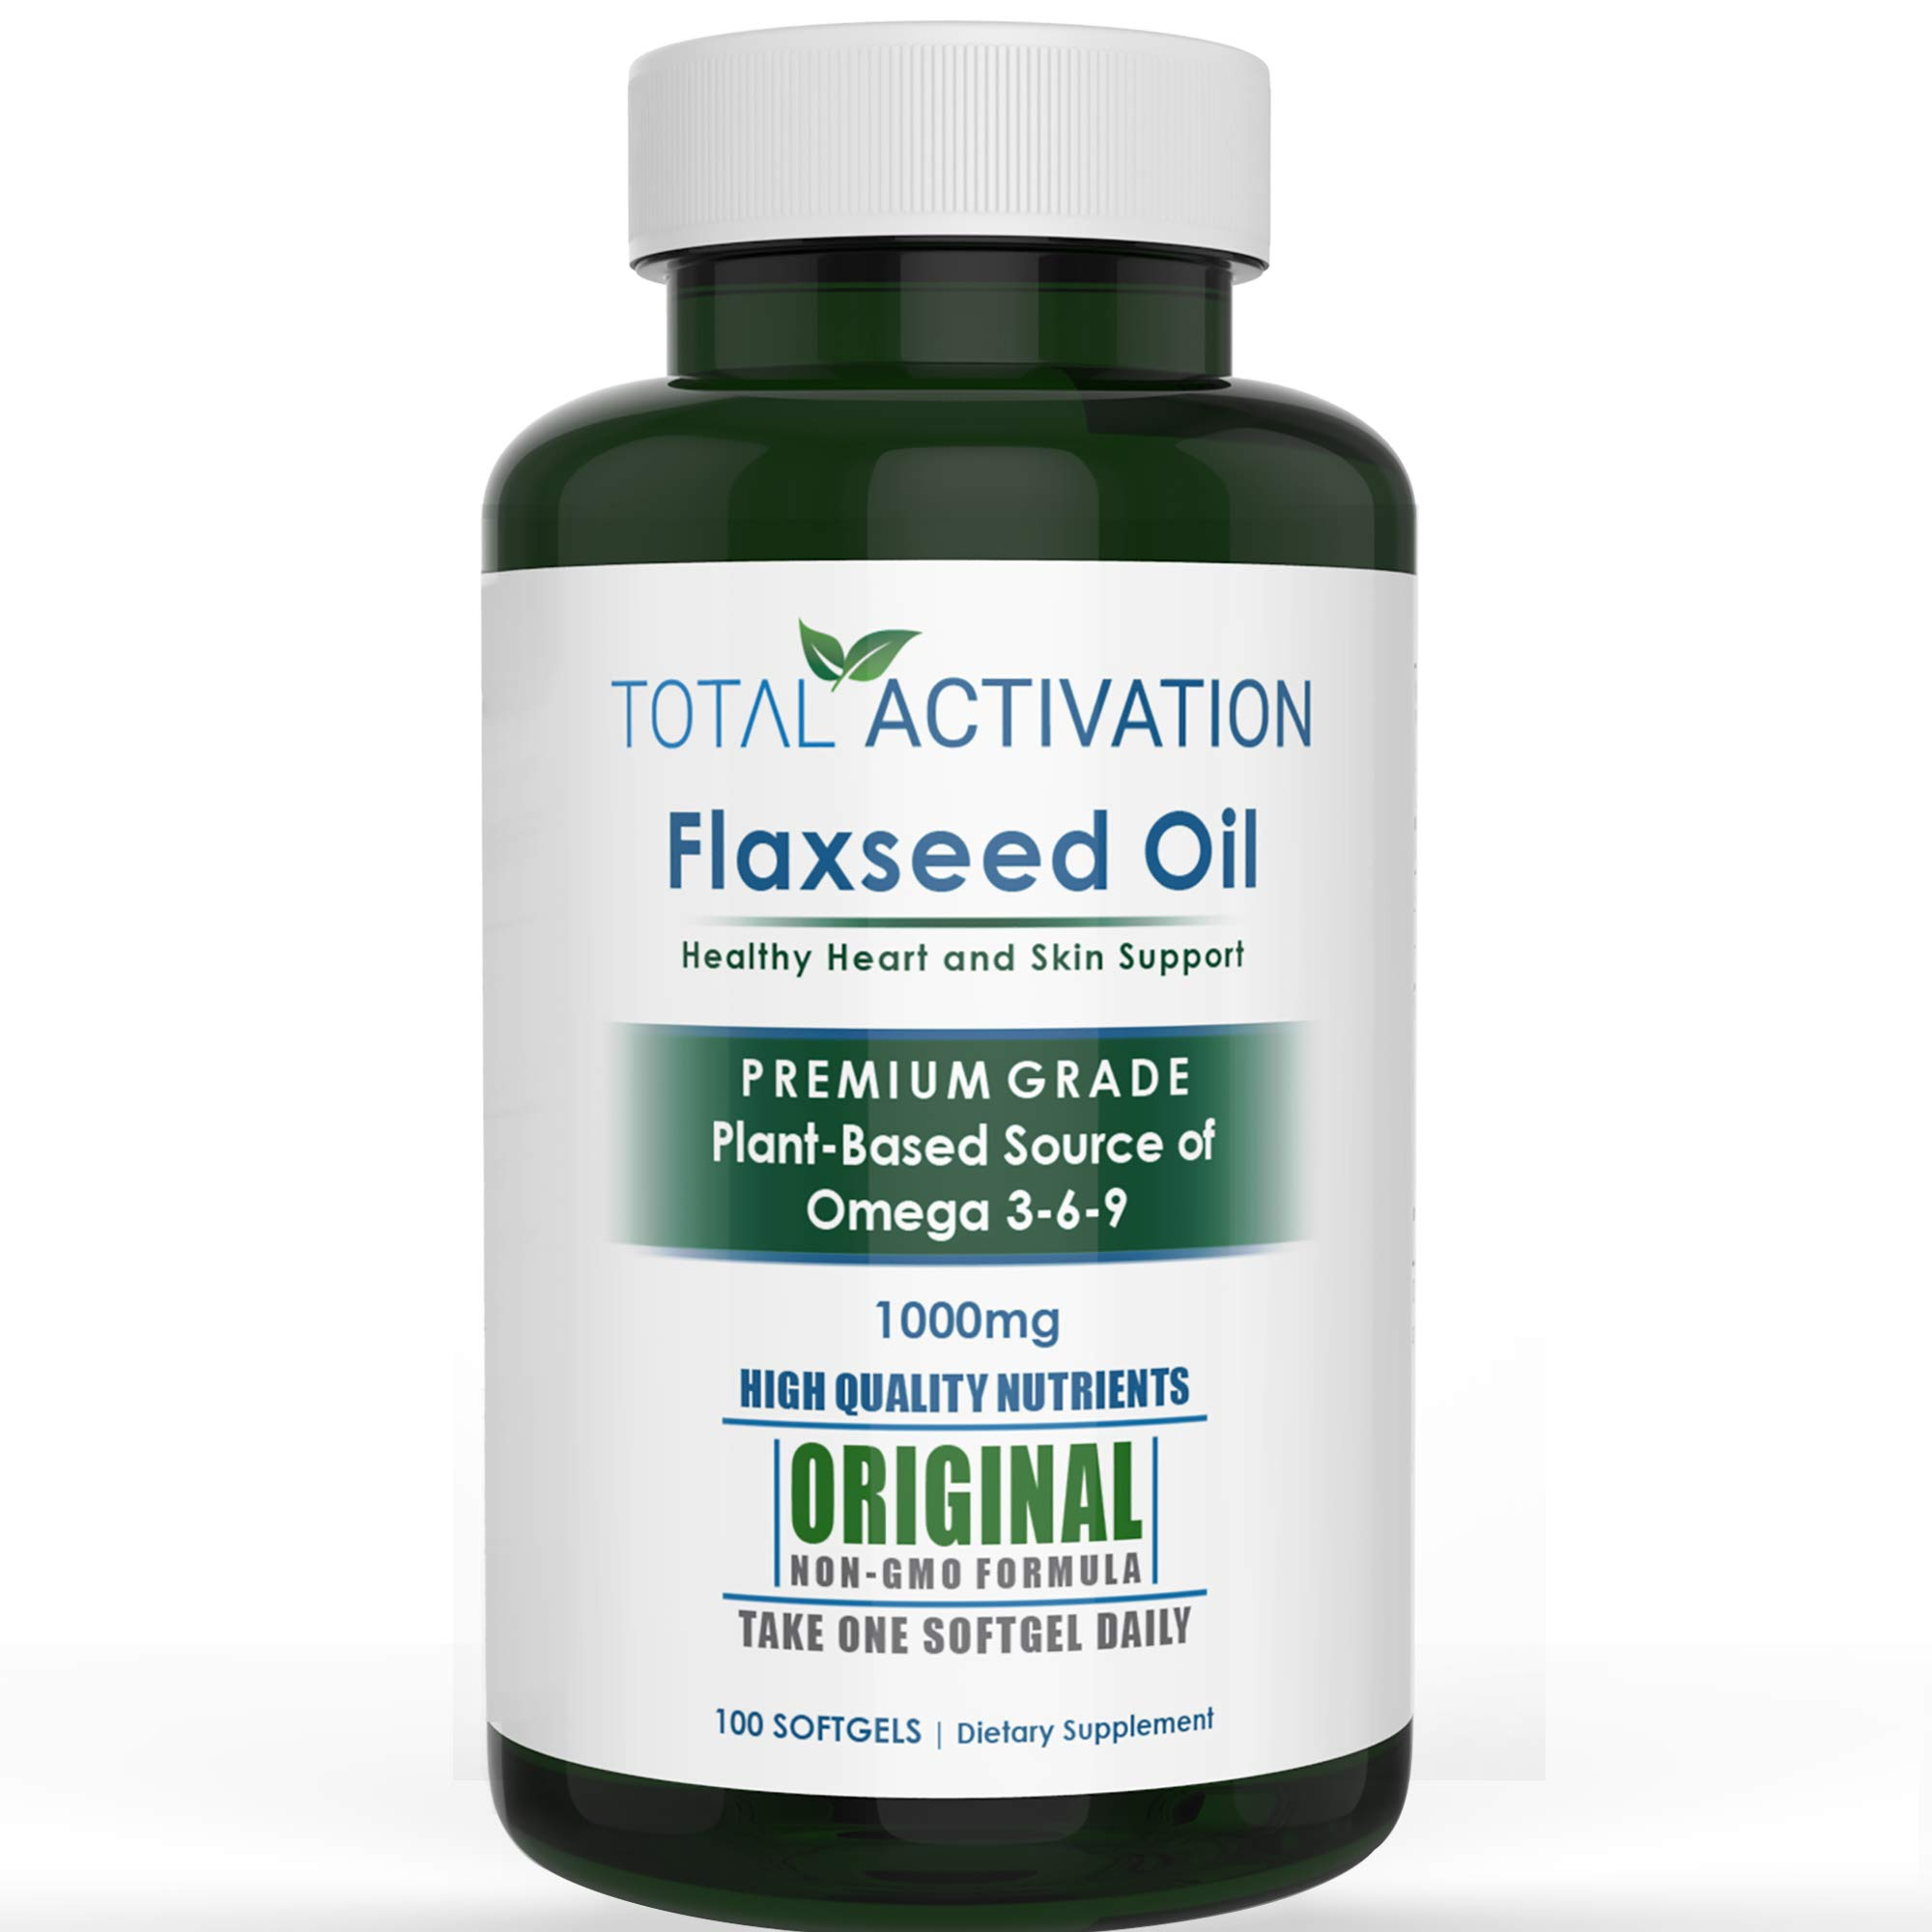 Organic Flaxseed Oil 1,000 mg Omega-3, Immune System Booster with Omega 3,6,9 from Natural ALA, Supports Healthy Heart, Hair, Skin and Nails, 100 Rich Liquid Softgels Per Bottle by Total Activation